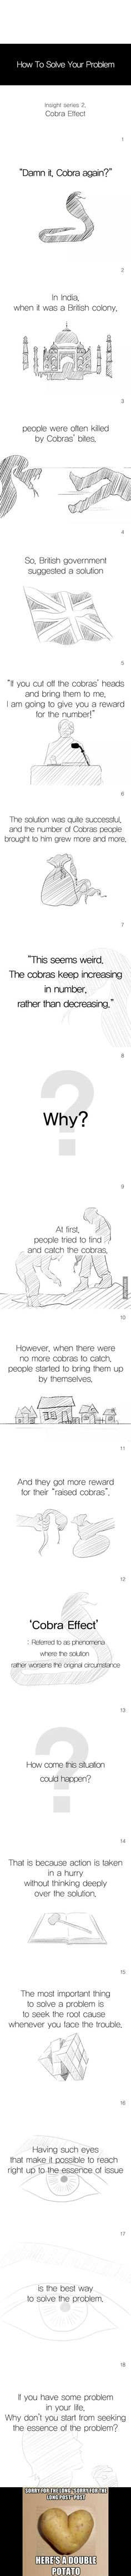 How to solve your problem. - 9GAG